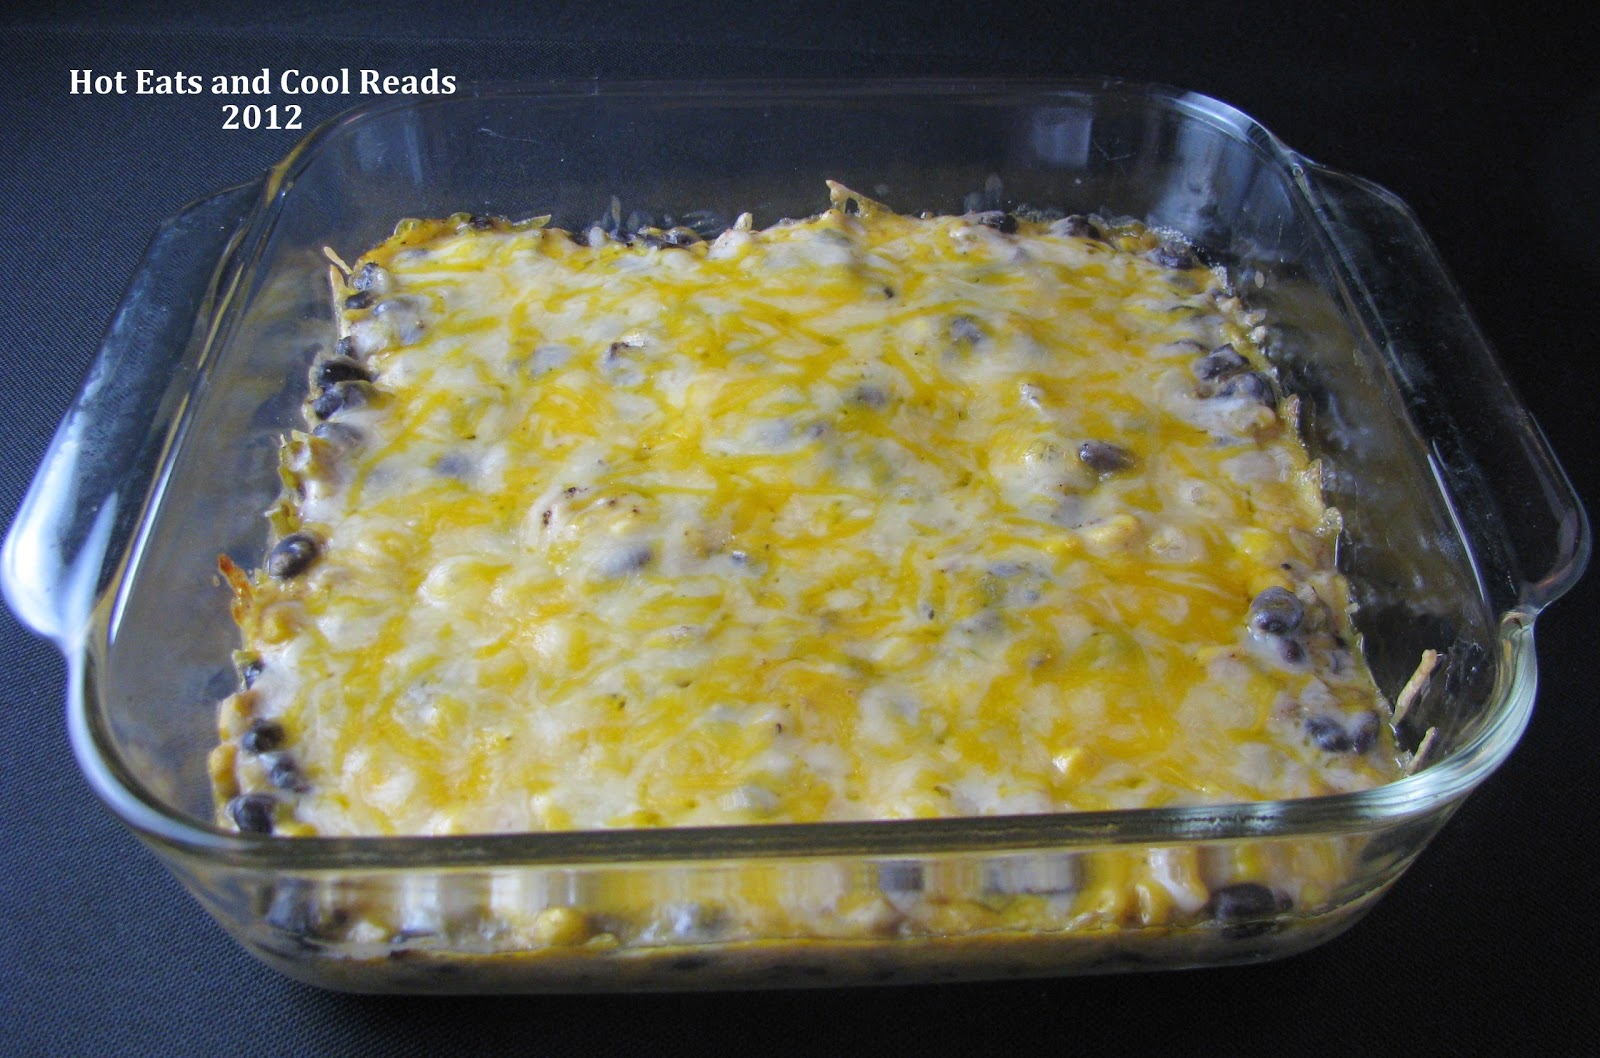 Hot Eats and Cool Reads: Cheesy Corn and Black Bean Dip Recipe